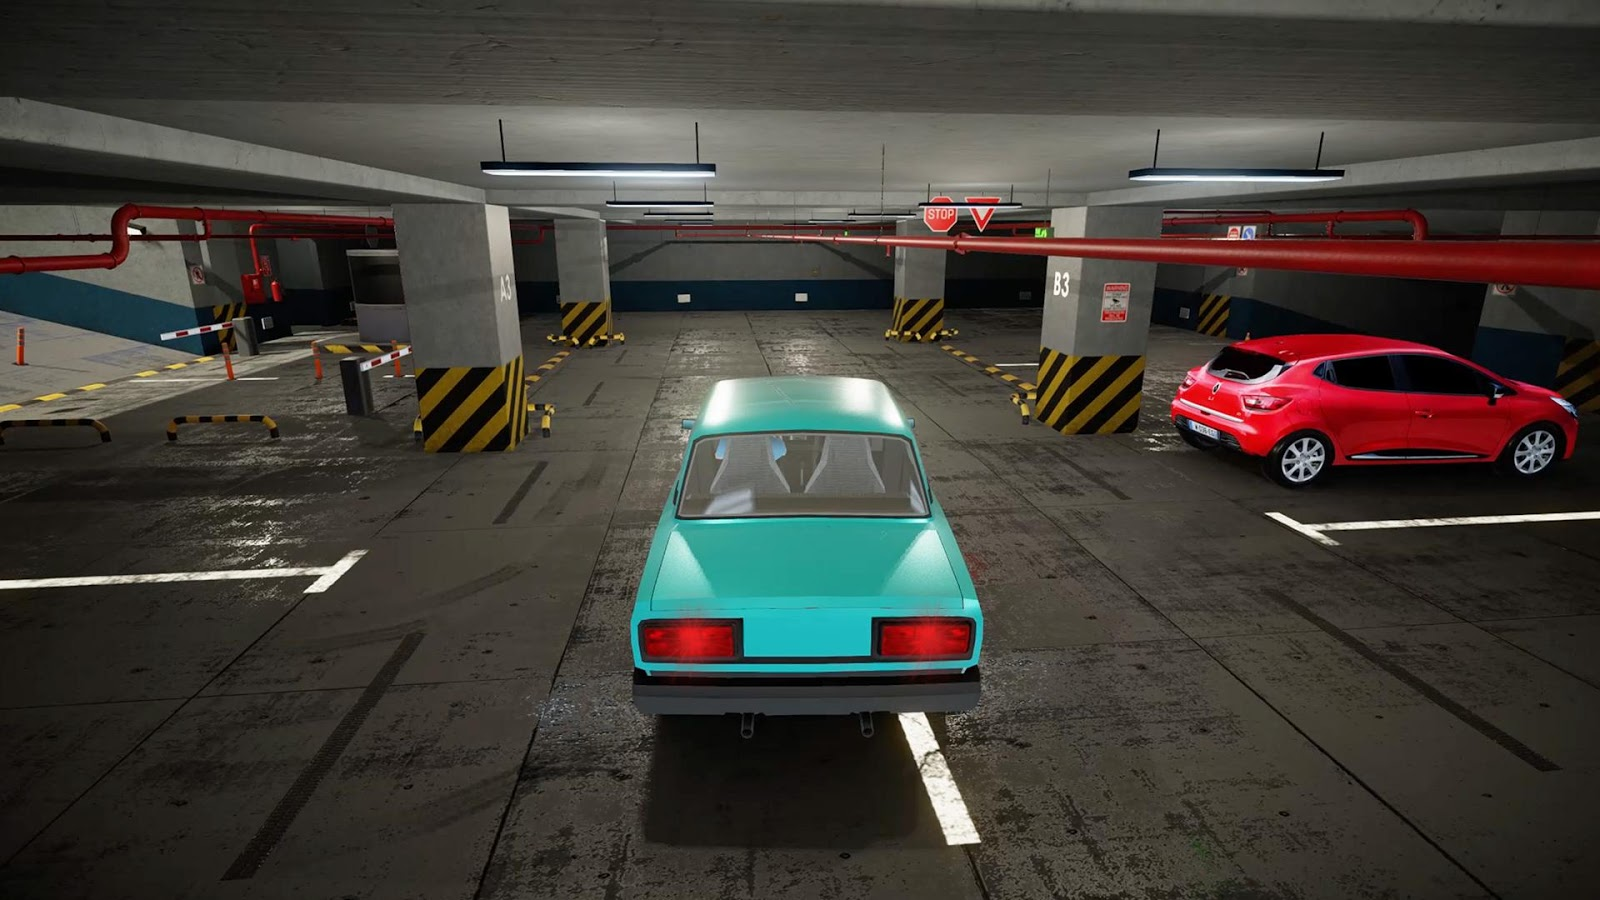 Valet Parking Multi Level Car Parking Game MOD APK